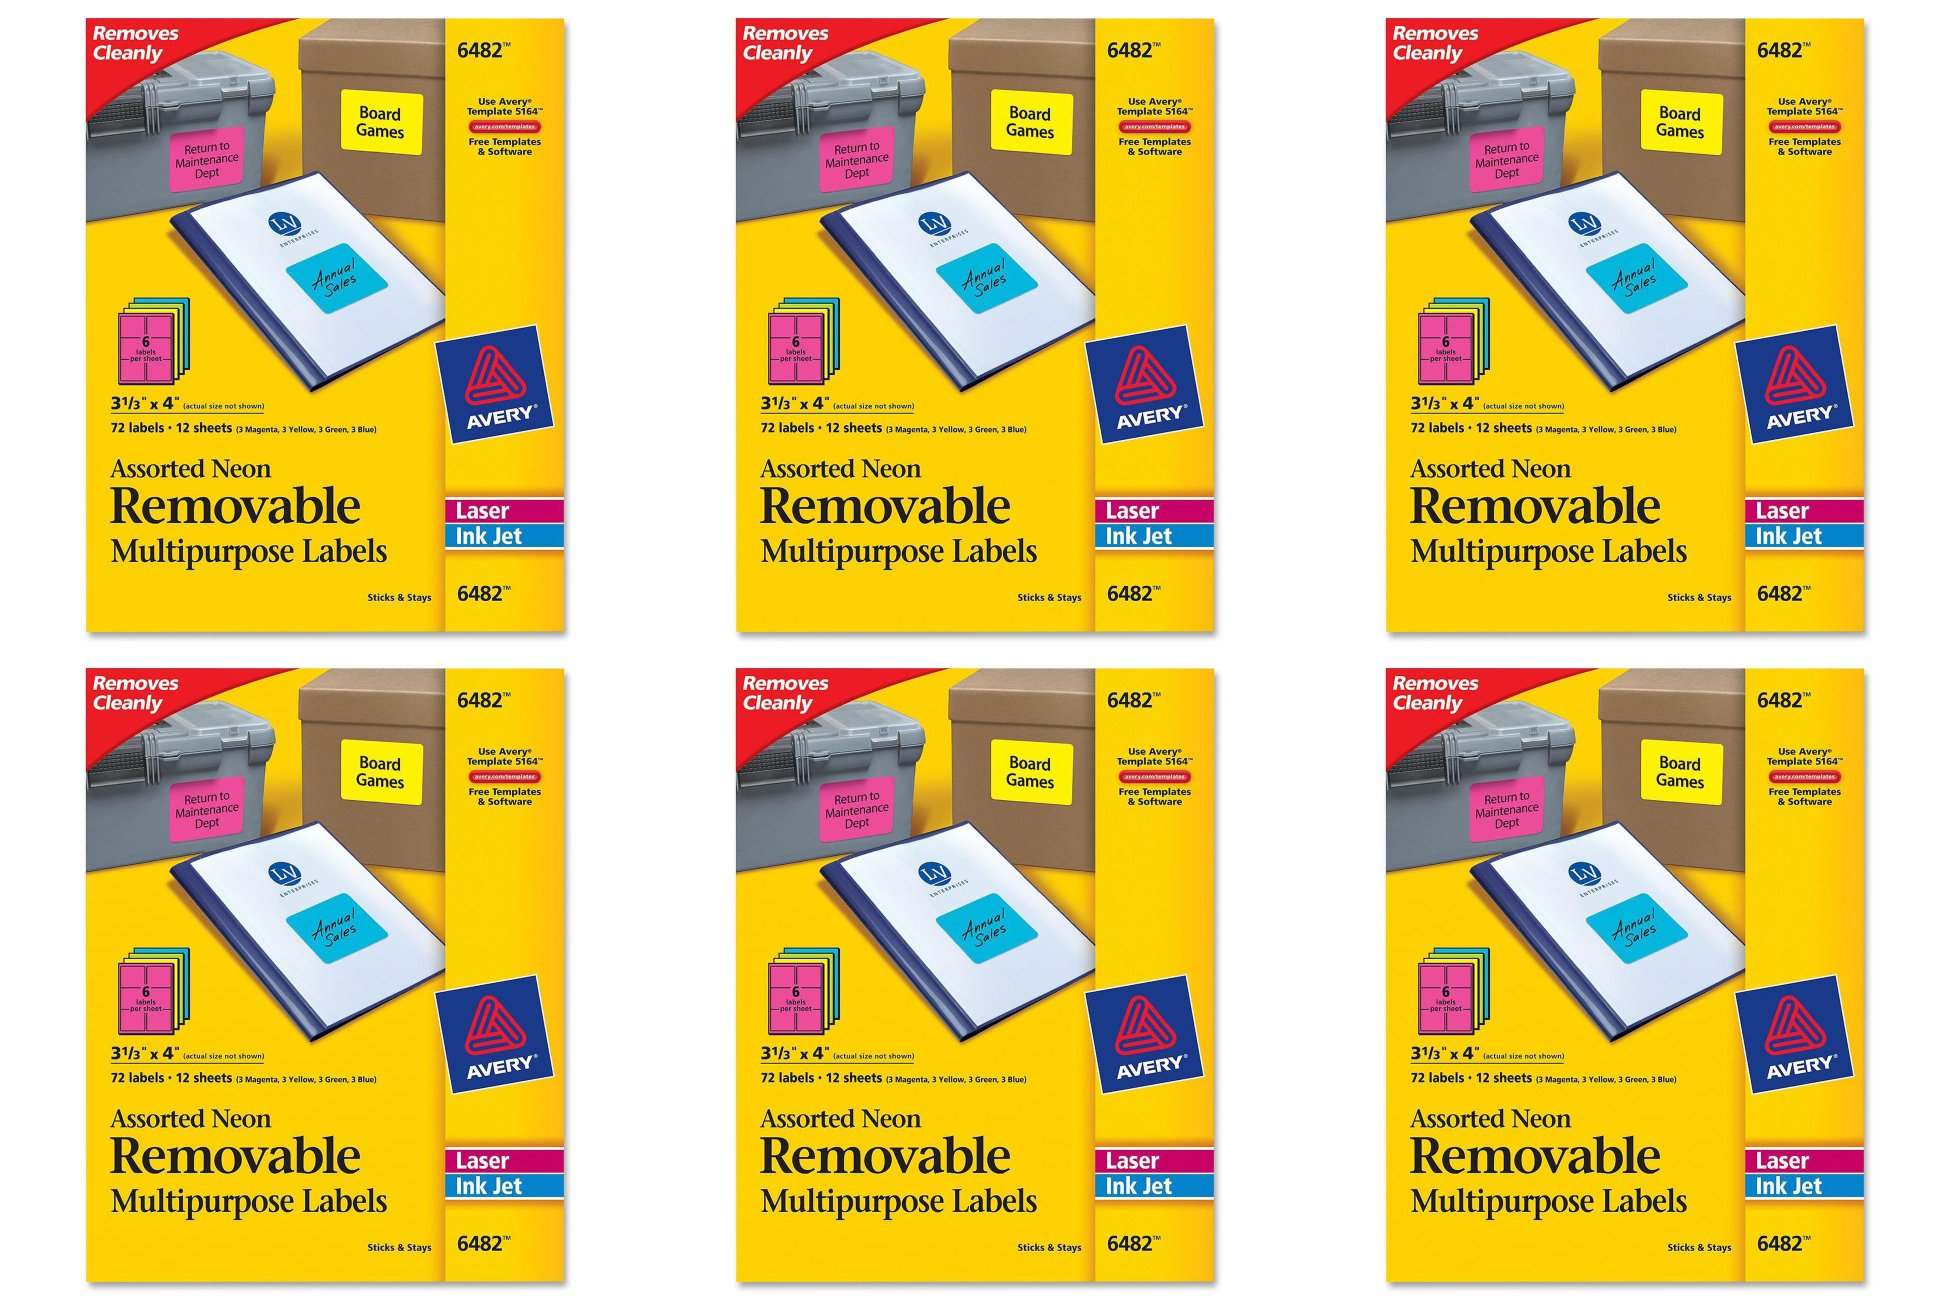 Avery Removable Multipurpose Labels, Assorted Neon, 6 Packs